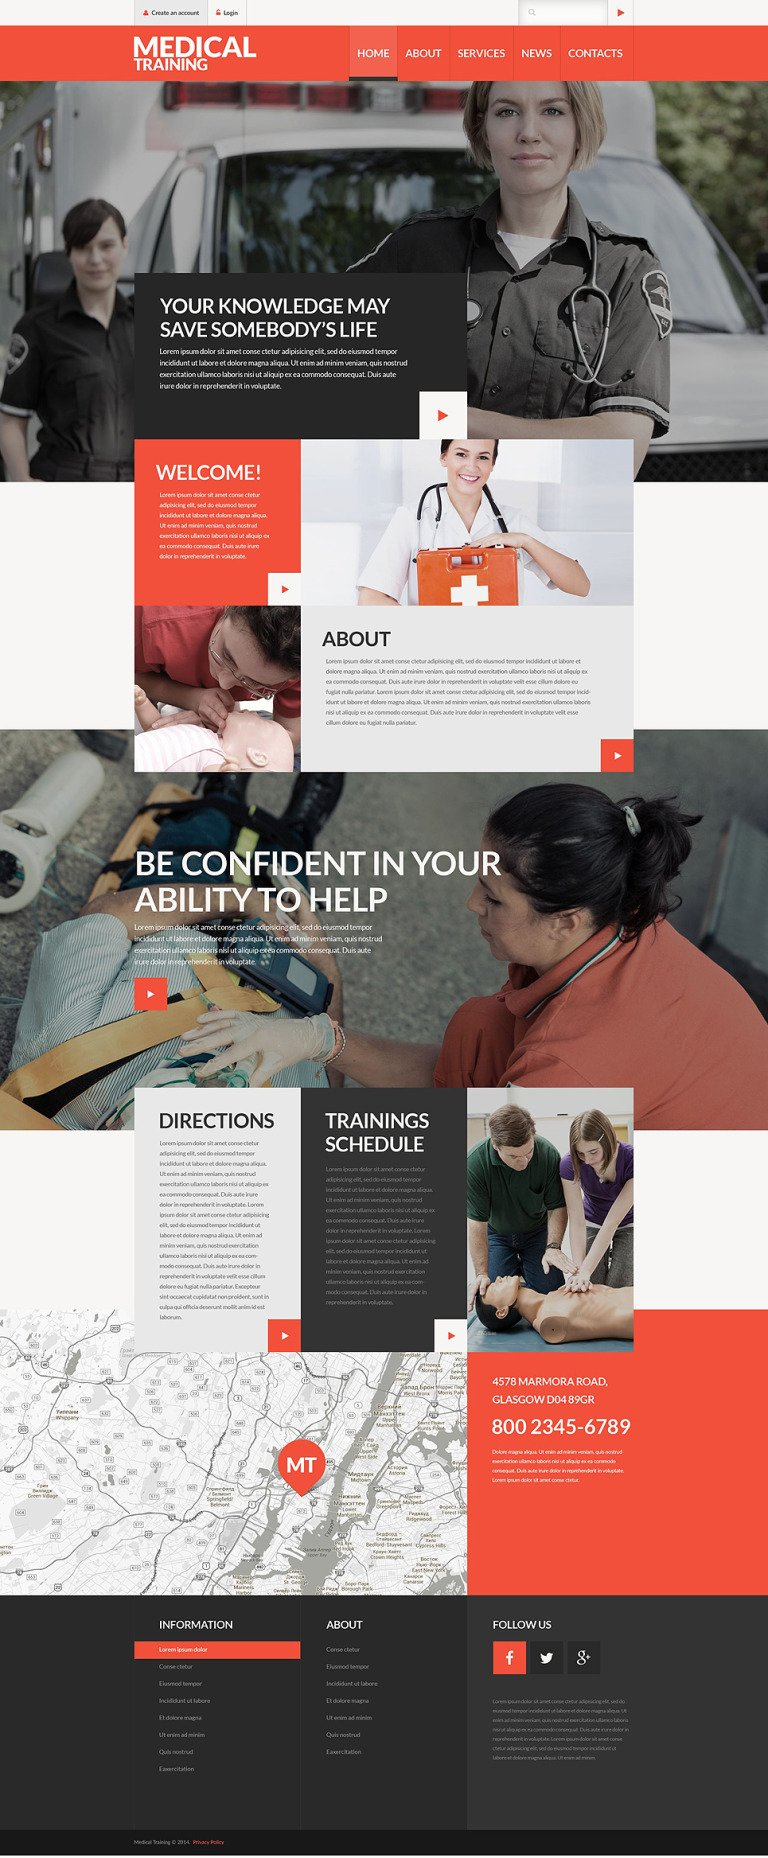 Medical Training School Website Template New Screenshots BIG